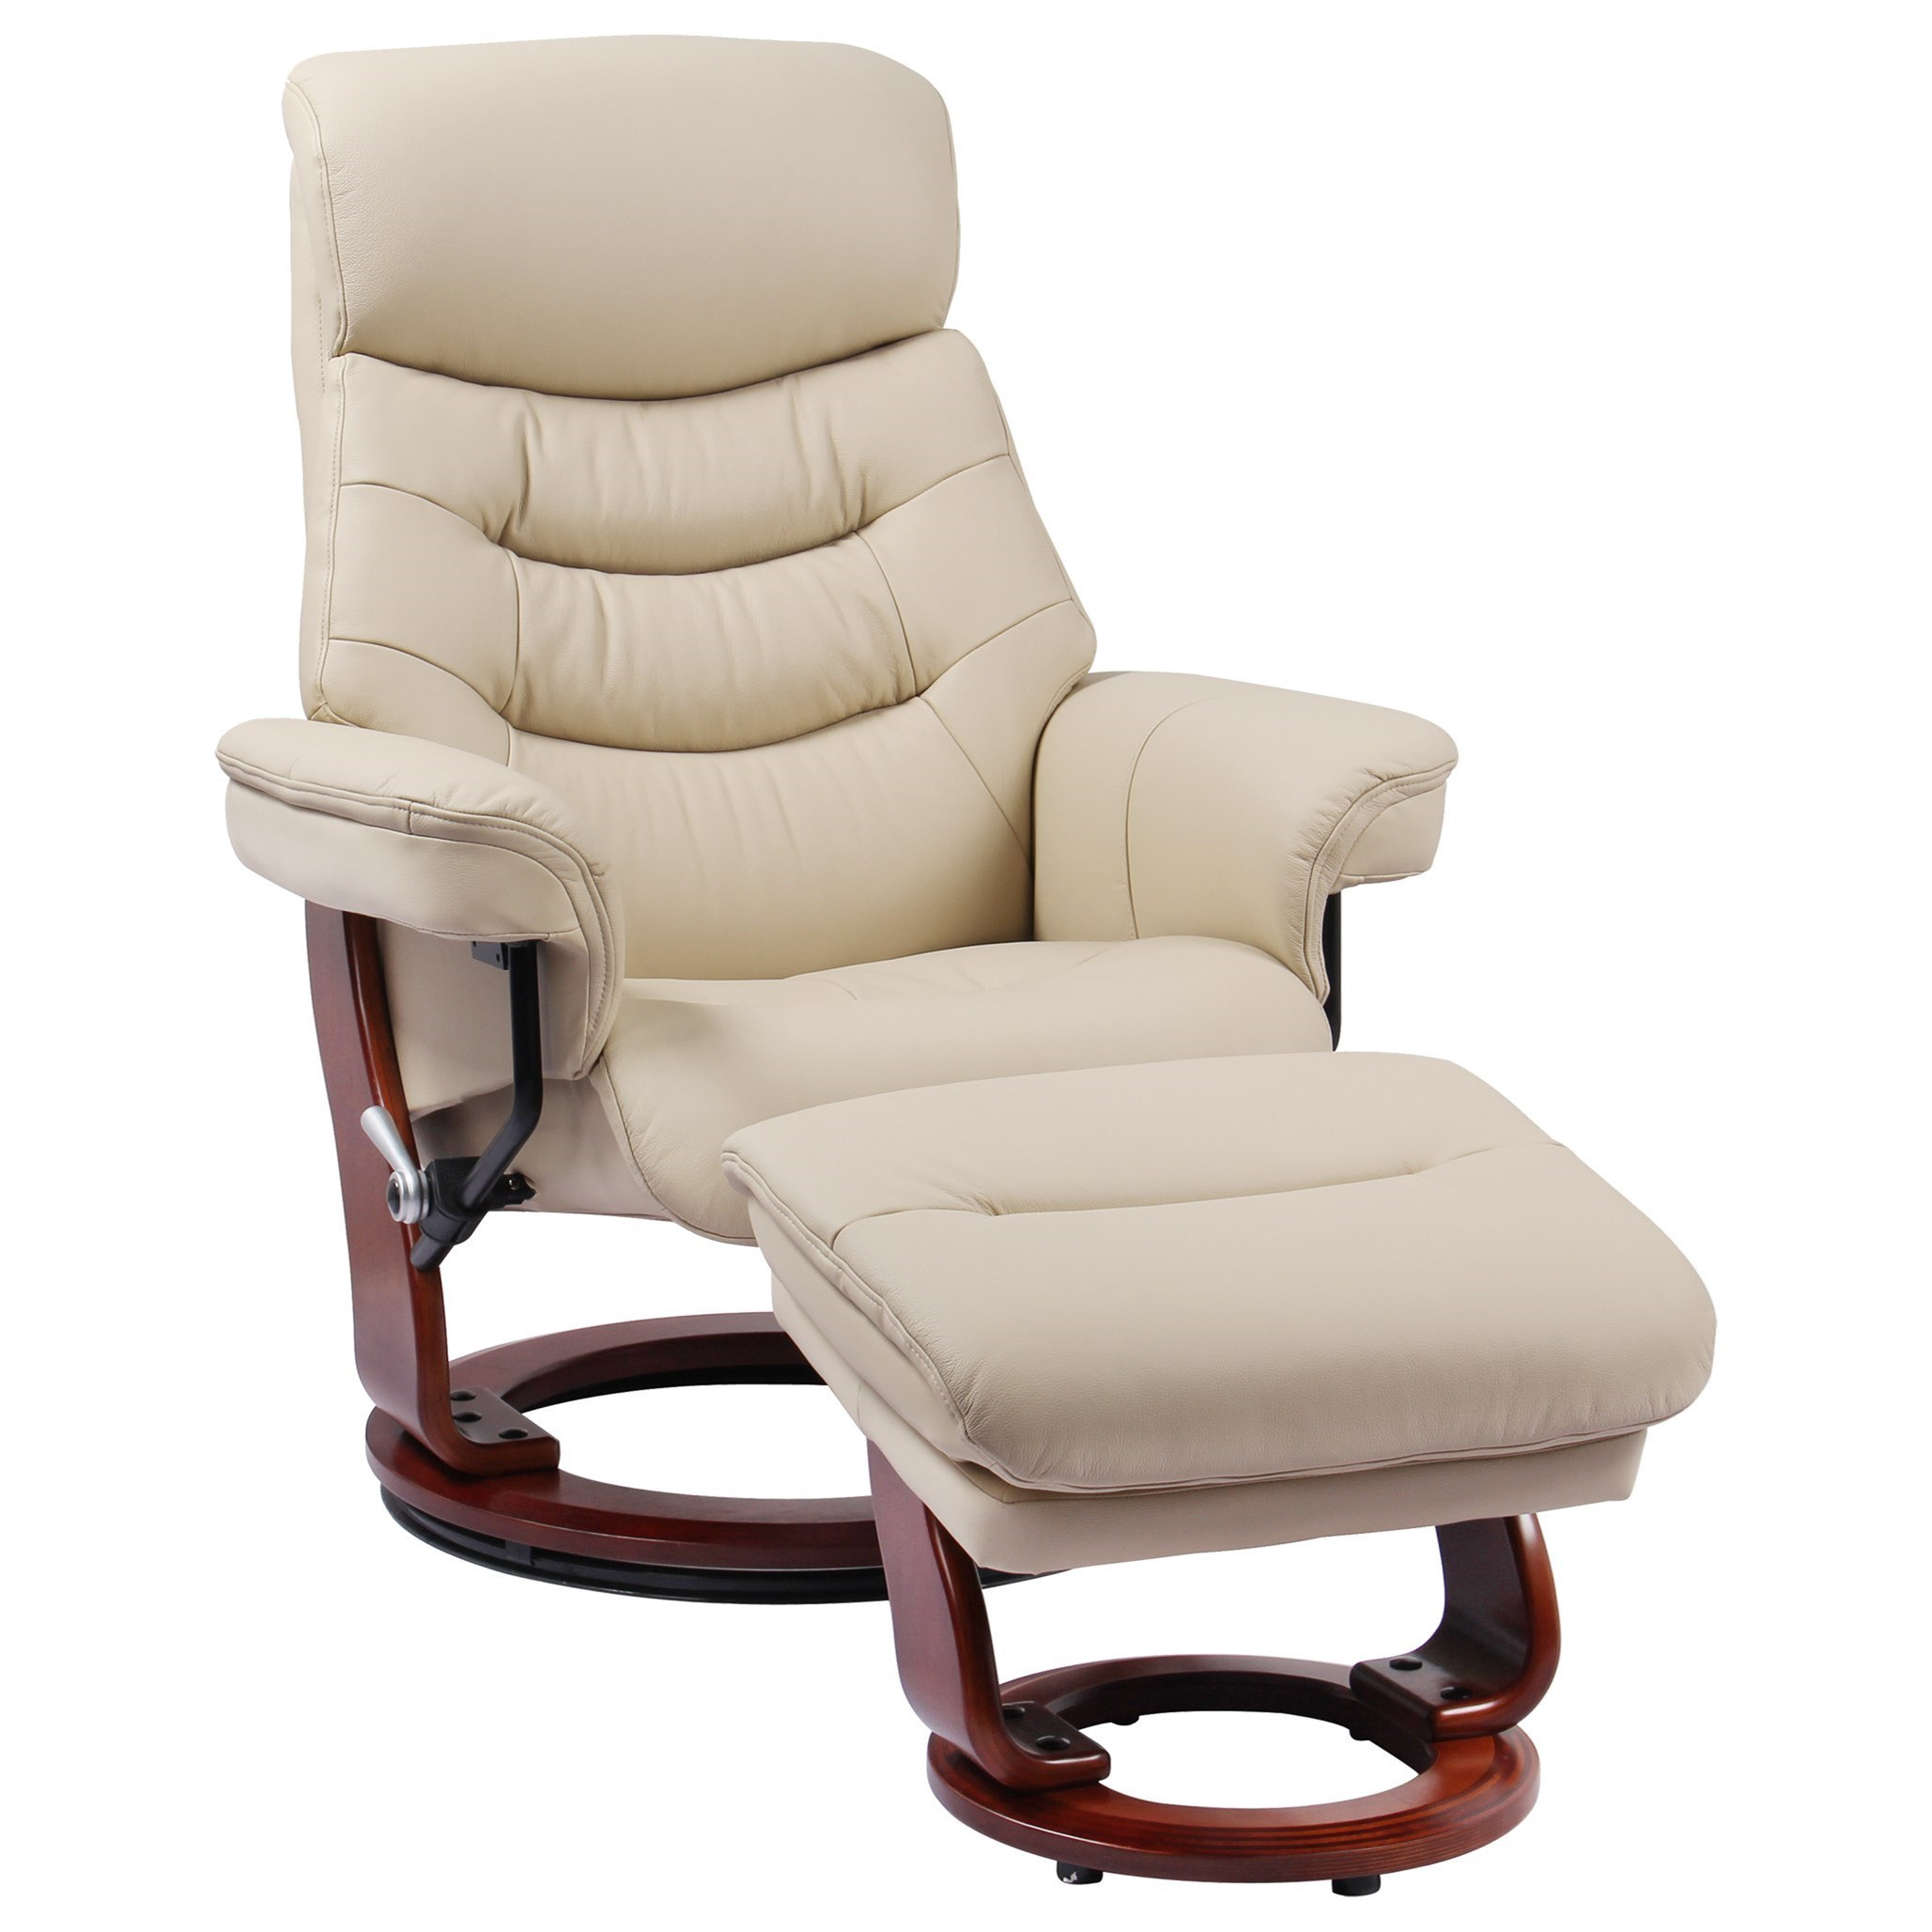 Benchmaster Happy Reclining Chair And Ottoman And Adjustable Hidden Headrest